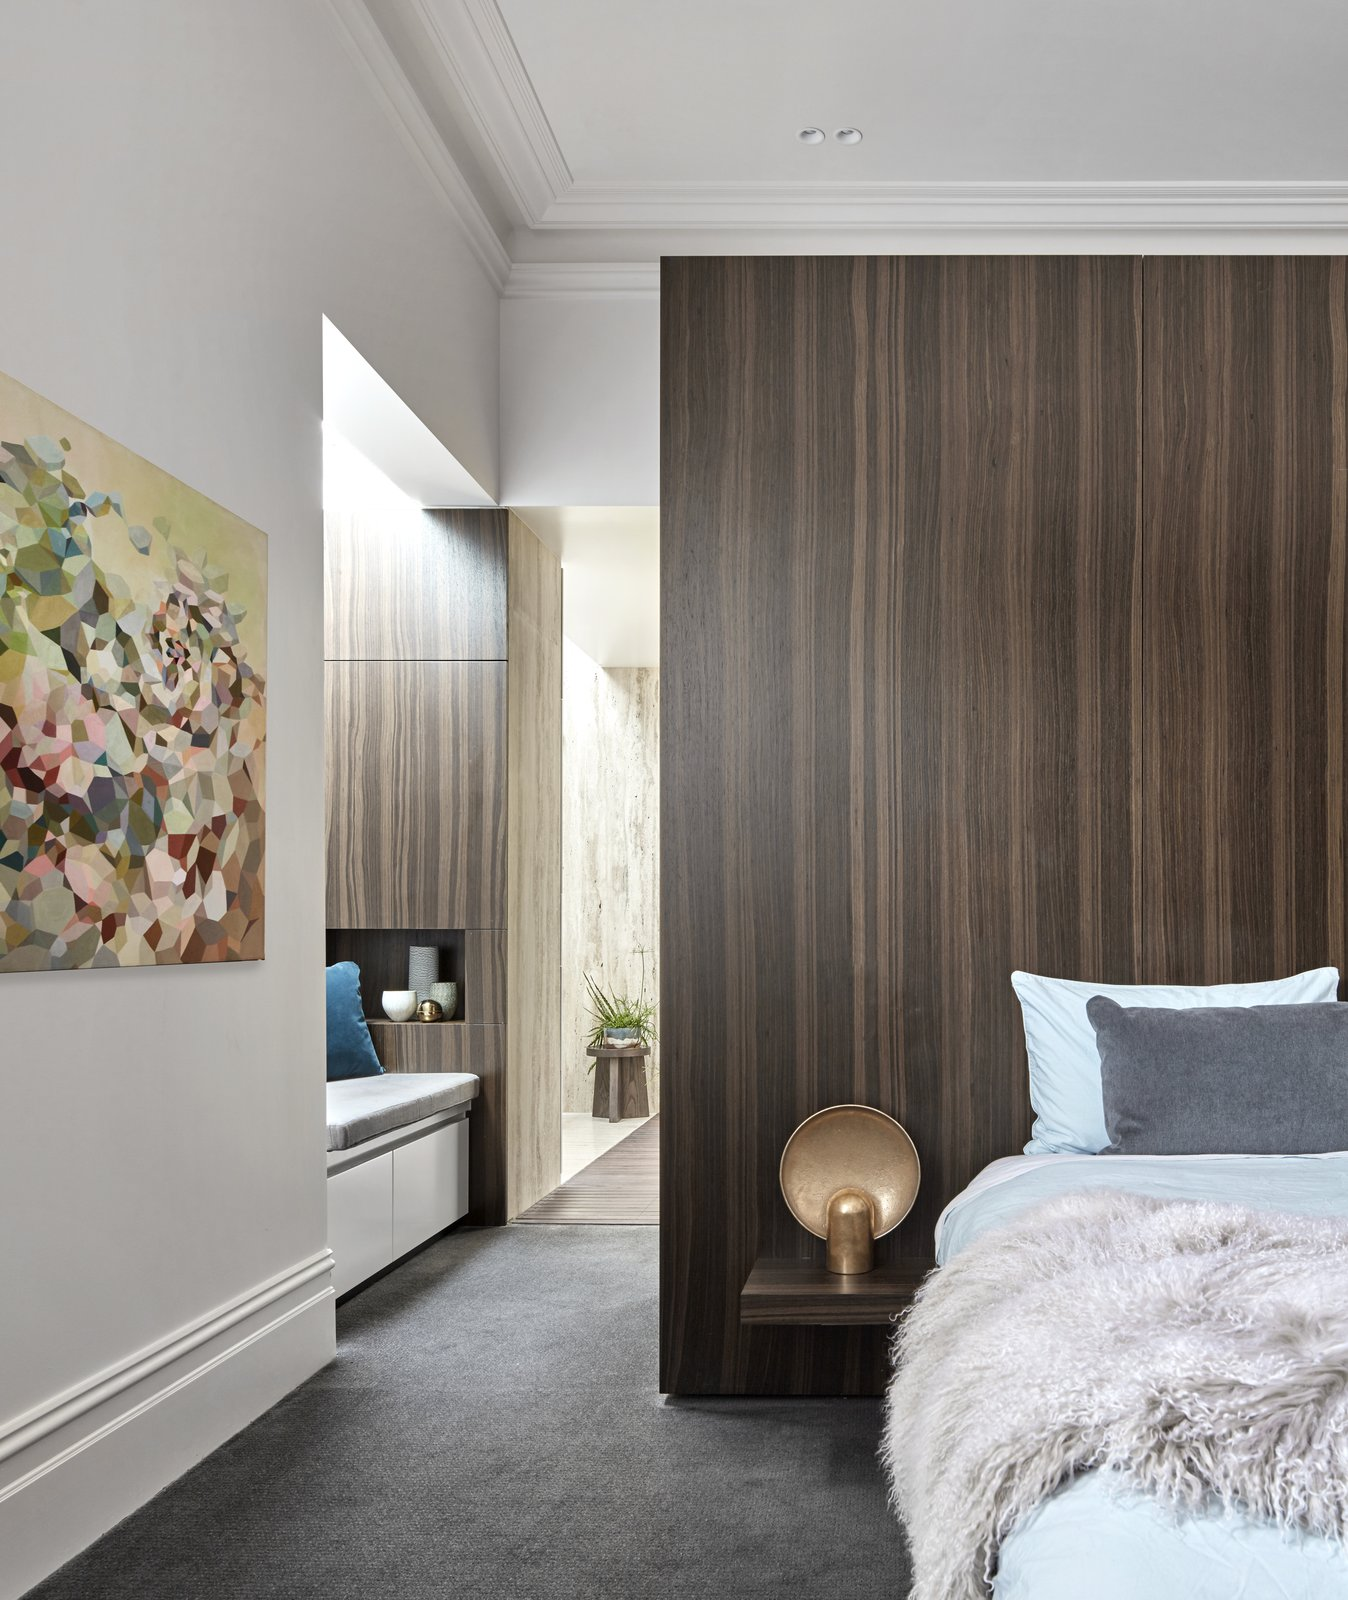 Bedroom, Bed, Night Stands, Carpet, Lamps, Bench, and Recessed Part of the renovation involved creating a master bedroom suite.  Best Bedroom Recessed Bench Night Stands Bed Photos from Courtyards Maximize Sunlight in This Renovated Australian Abode